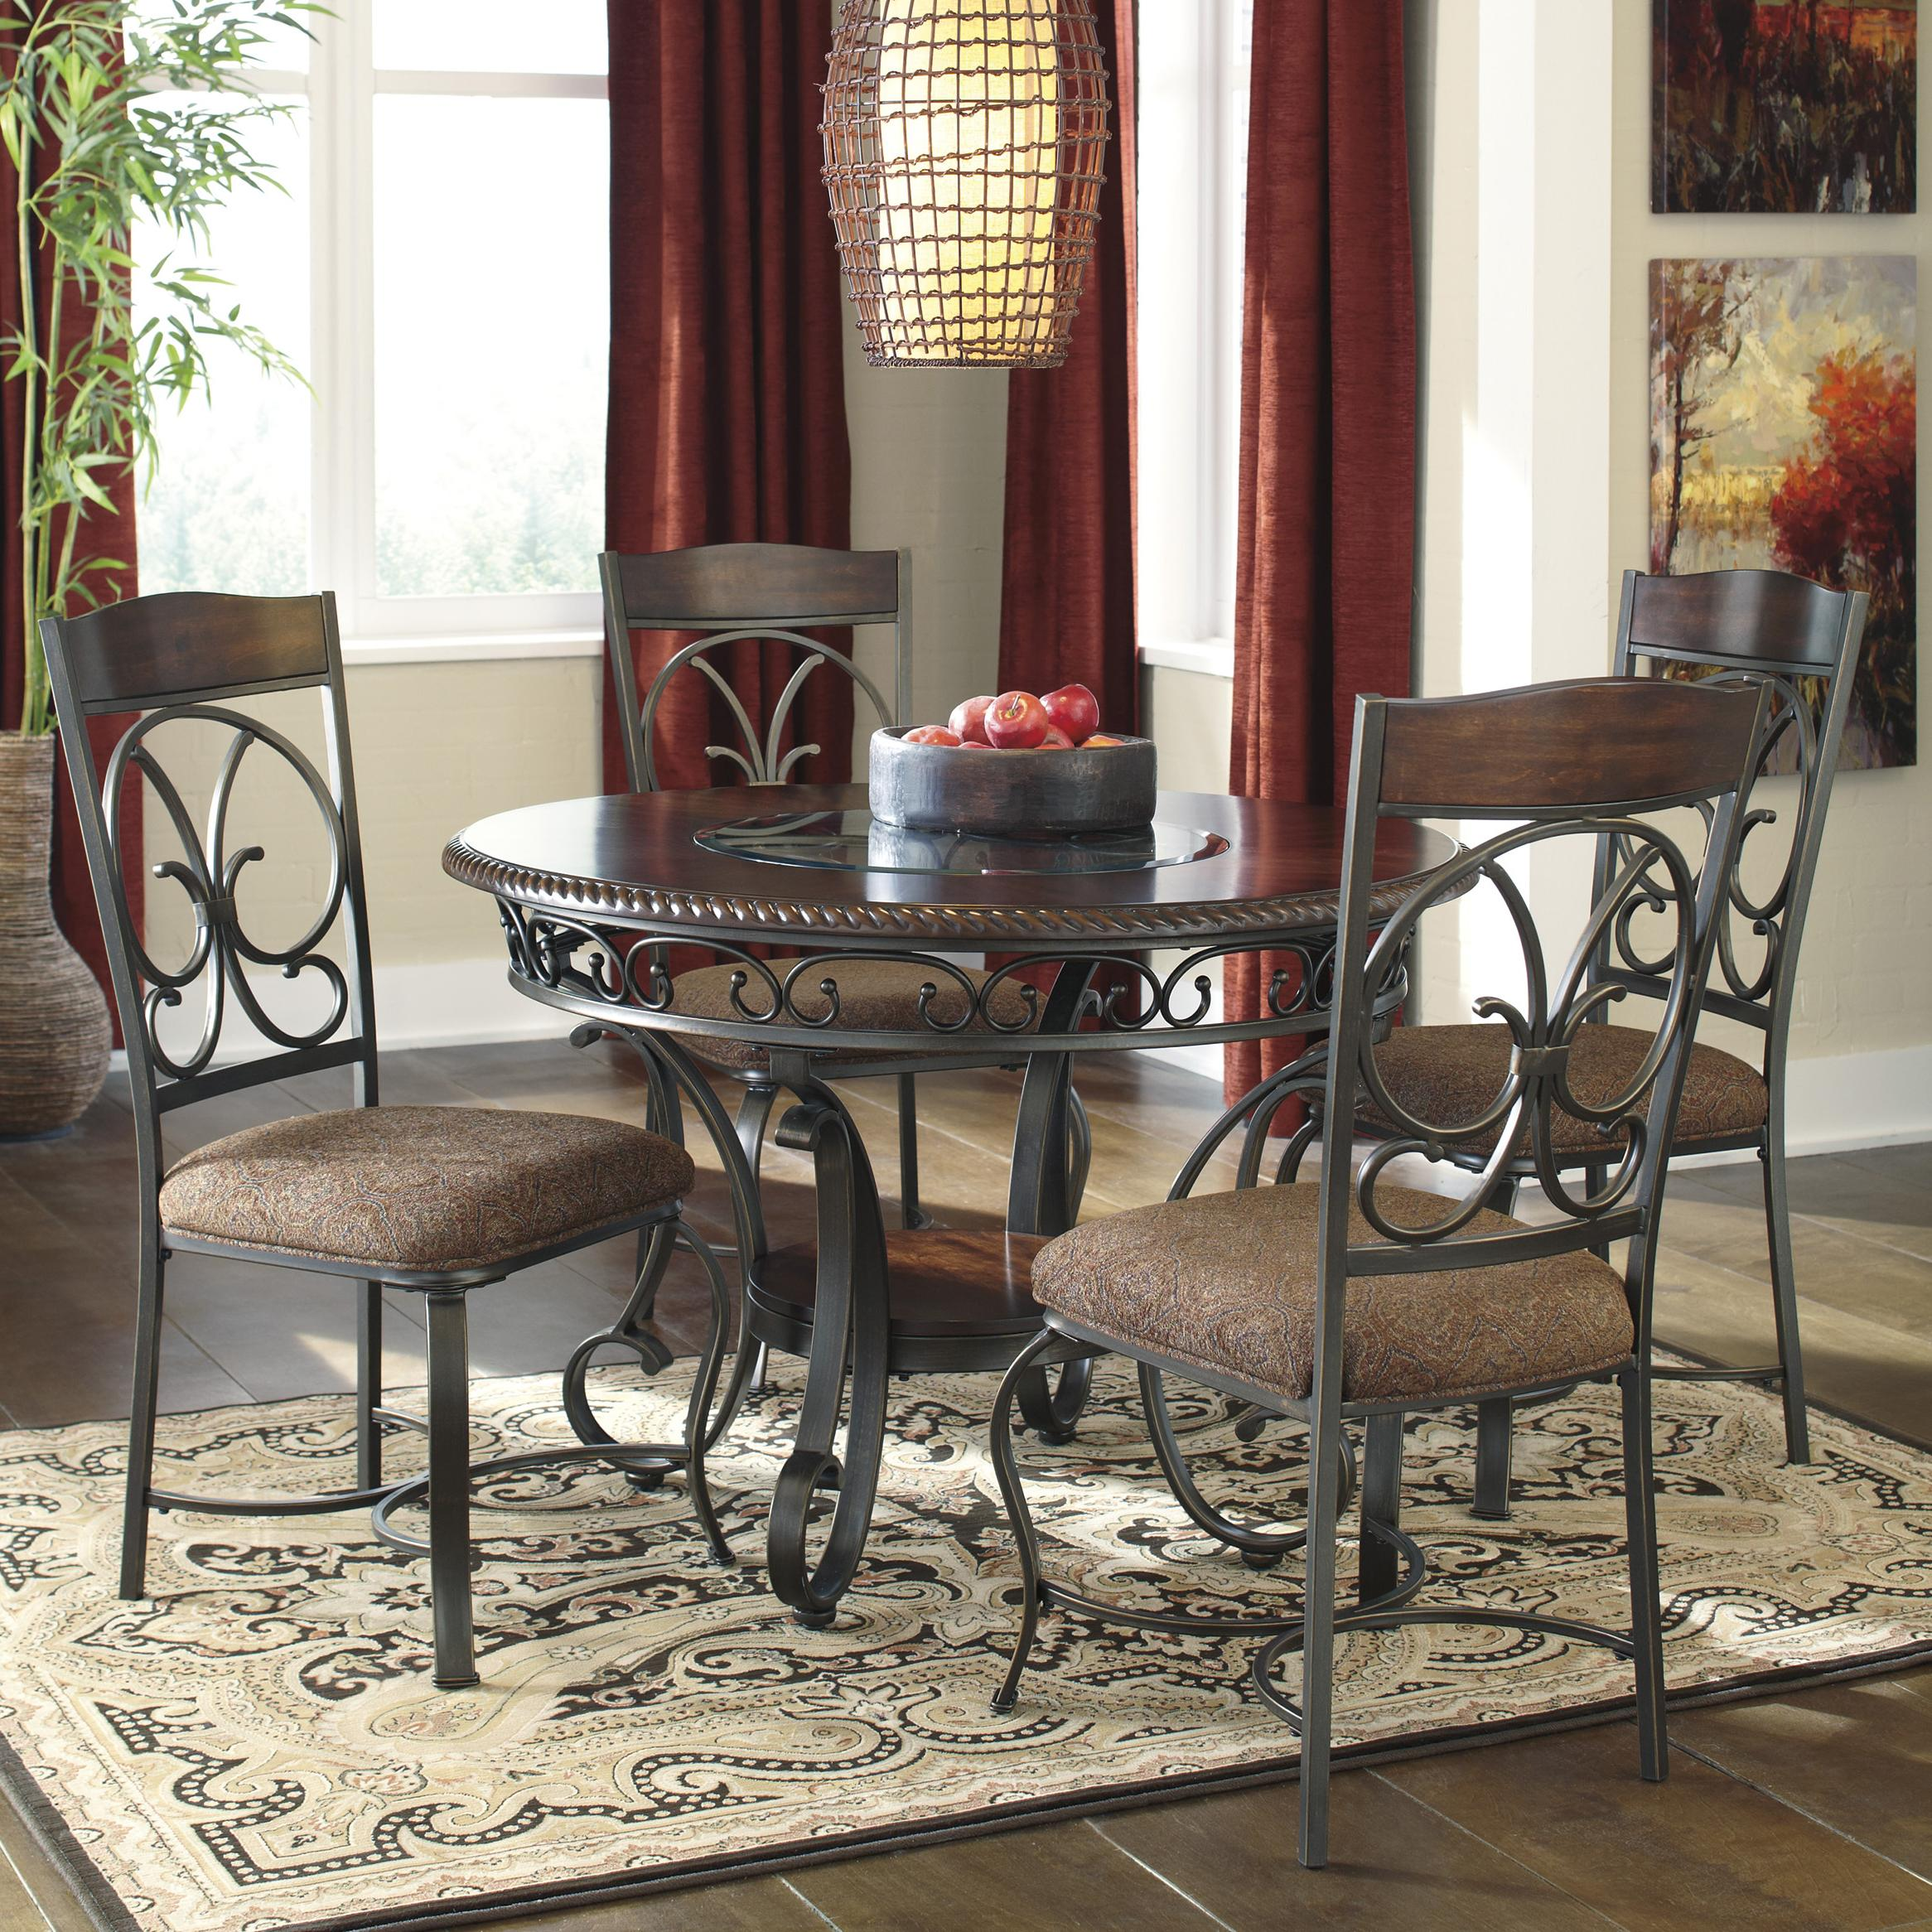 Glambrey Round Dining Table and Chair Set by Ashley (Signature Design) at Johnny Janosik